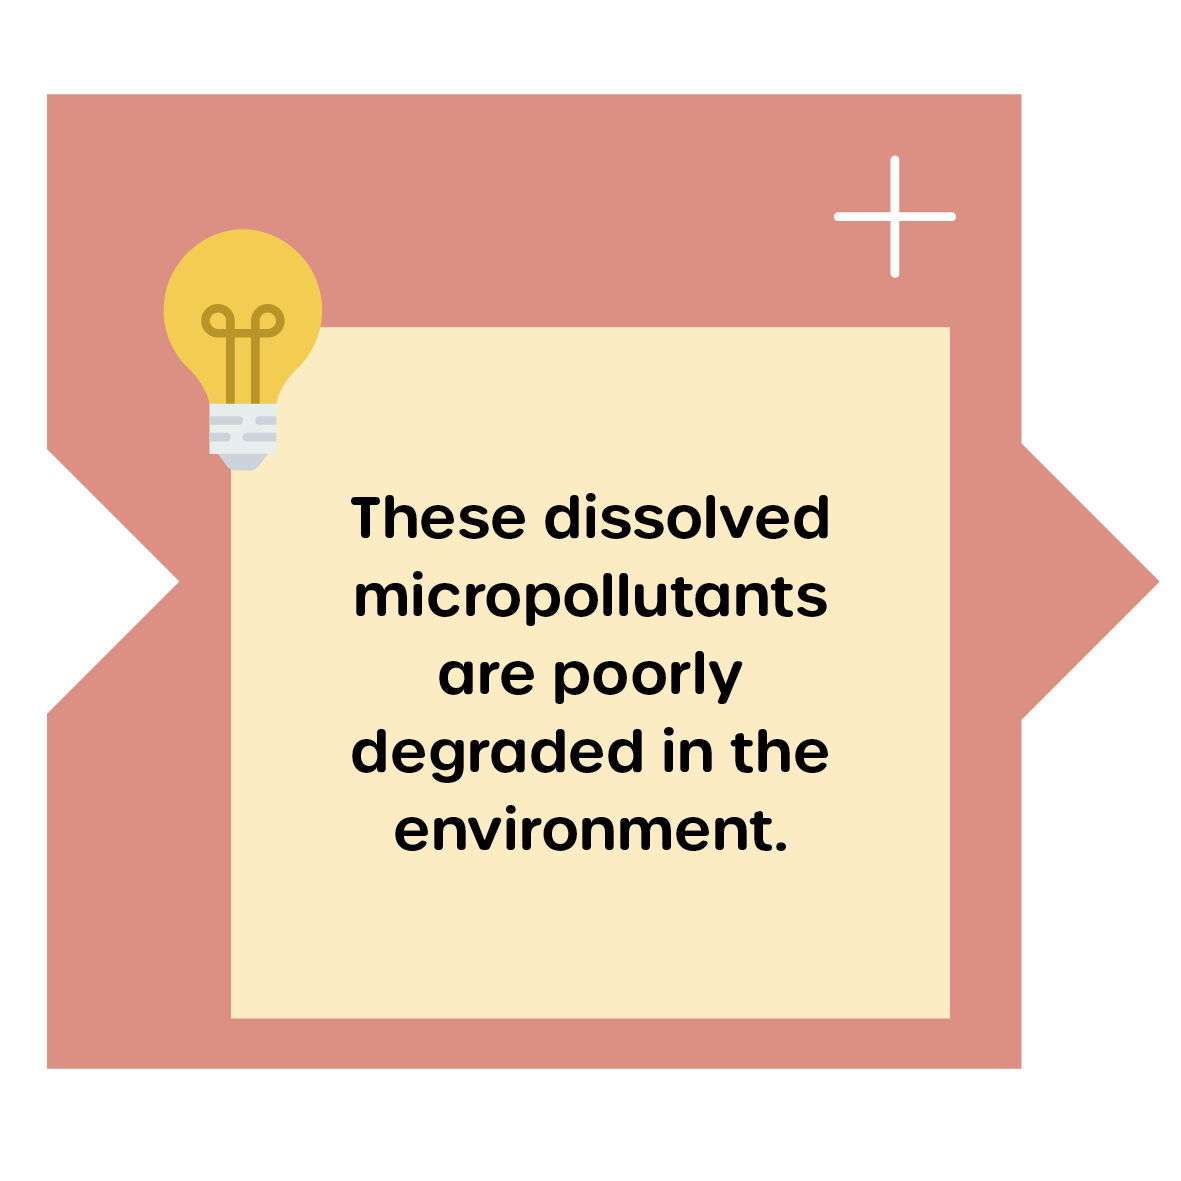 Micropollutants and environment